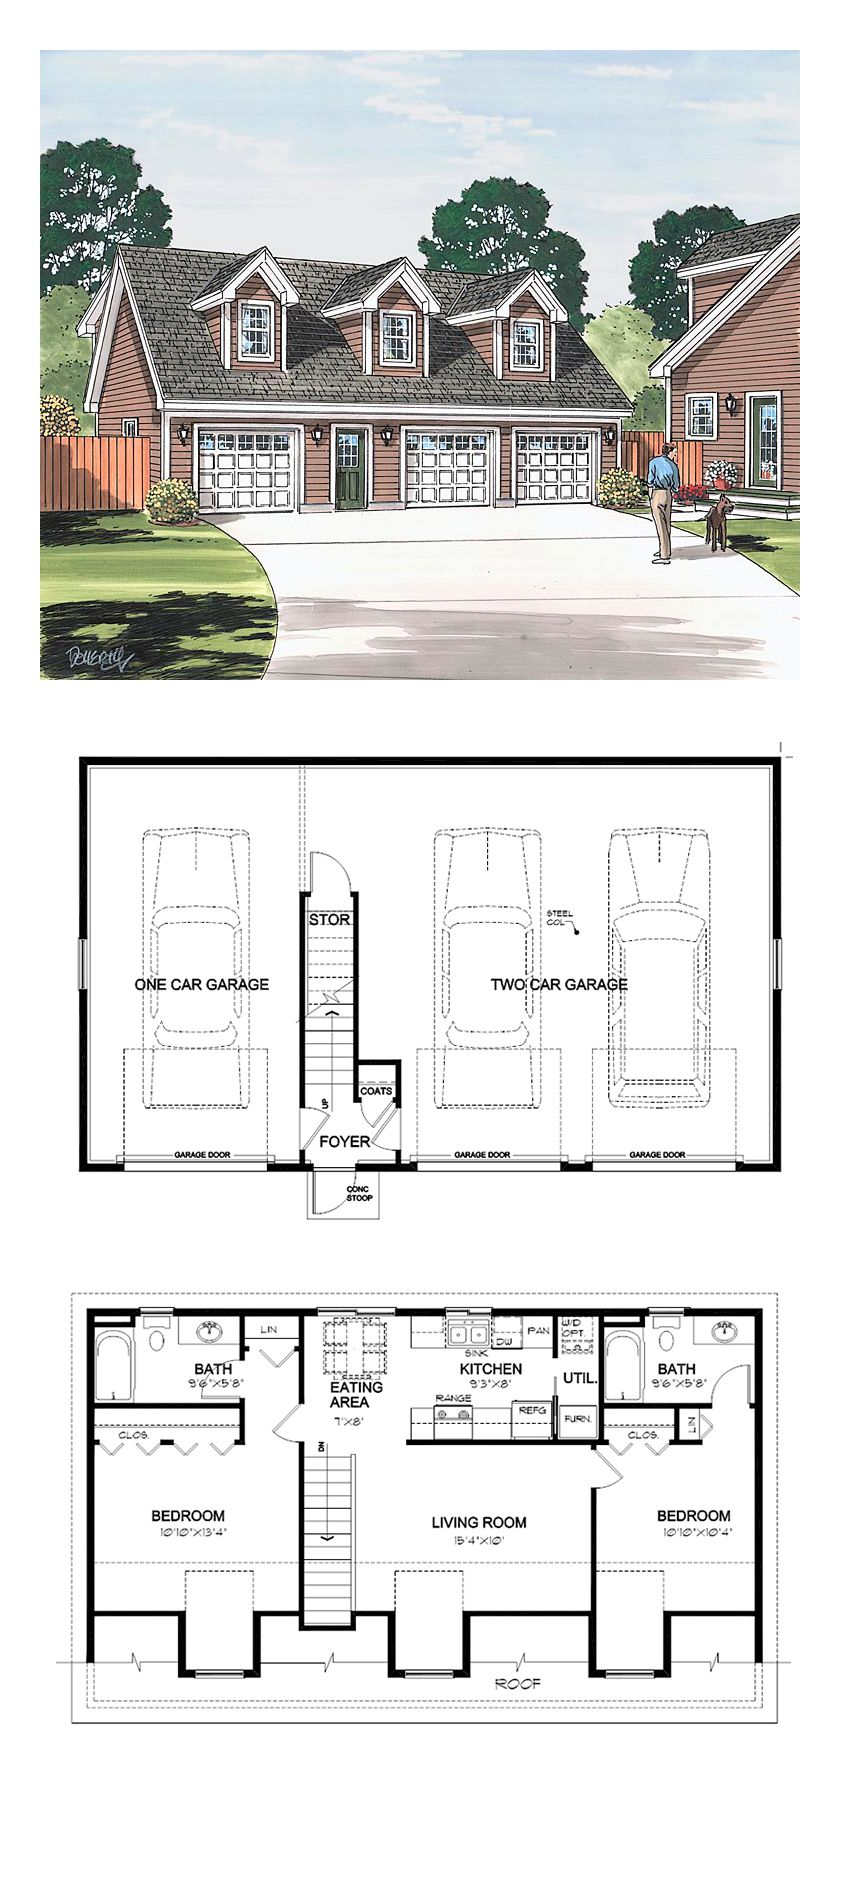 Garage apartment plan 30032 total living area 887 sq for 3 bedroom garage apartment